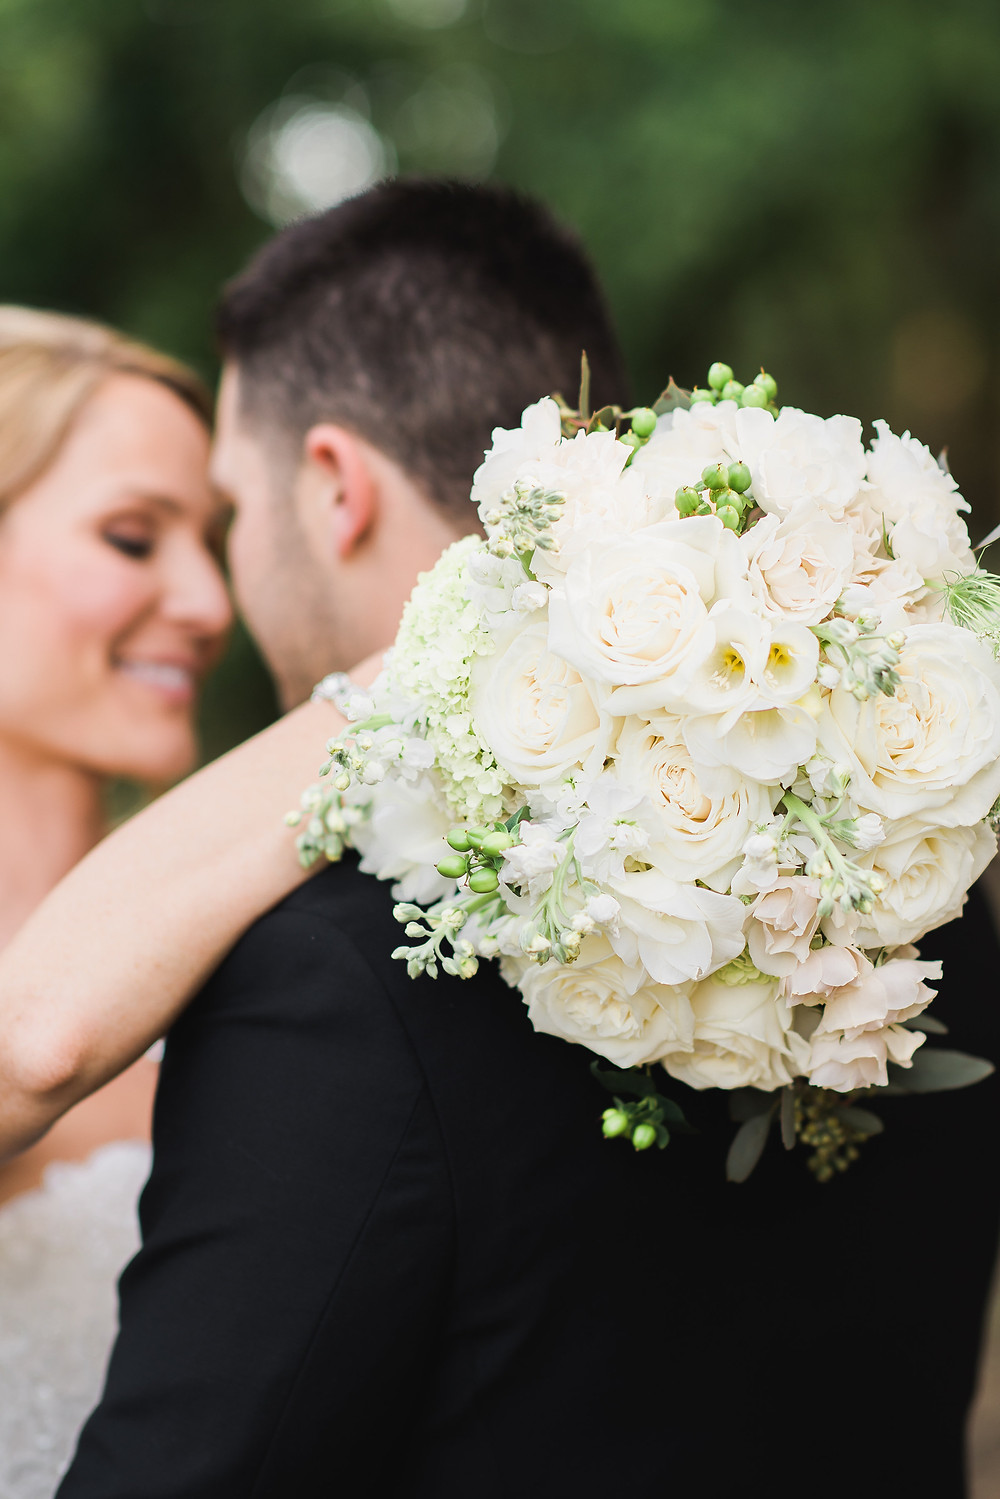 Bride and Groom | Visual Impact Design wedding flowers | Custock Photography